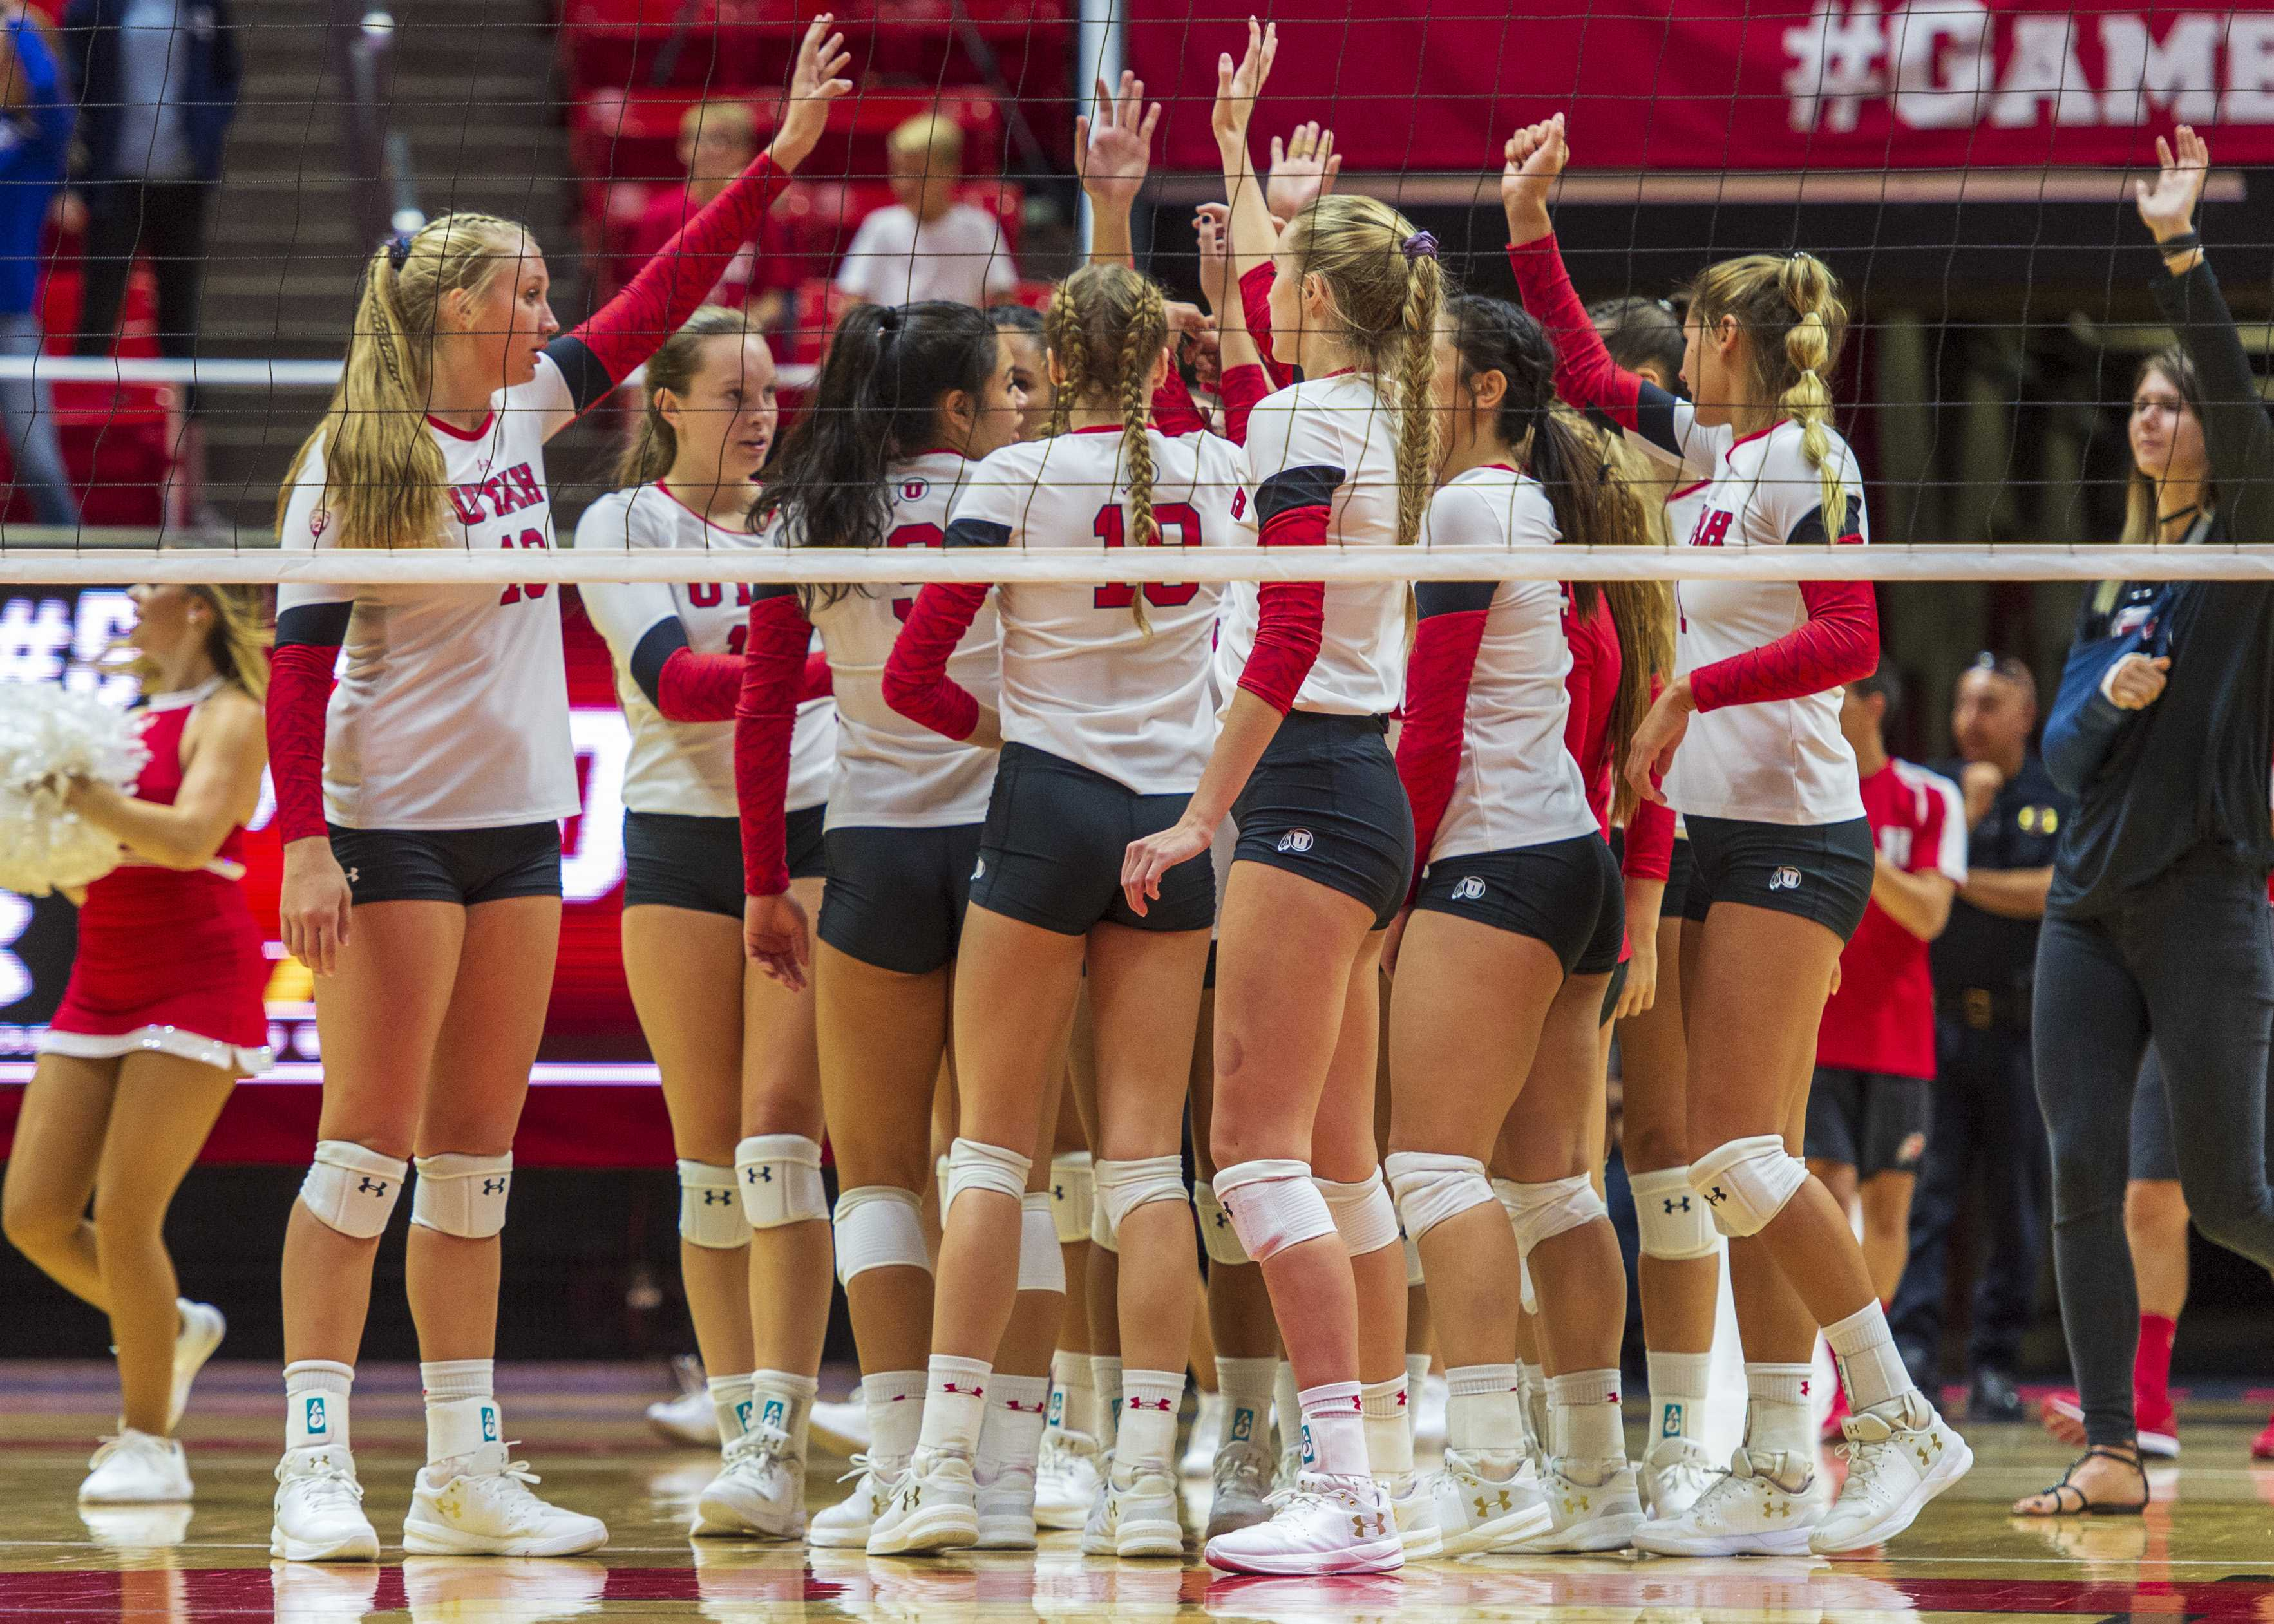 The University of Utah celebrates after their victory in an NCAA Volleyball match vs. UVU at the Jon M. Huntsman Center in Salt Lake City, Utah on Friday, Sept. 14, 2018 (Photo by Kiffer Creveling   The Daily Utah Chronicle)